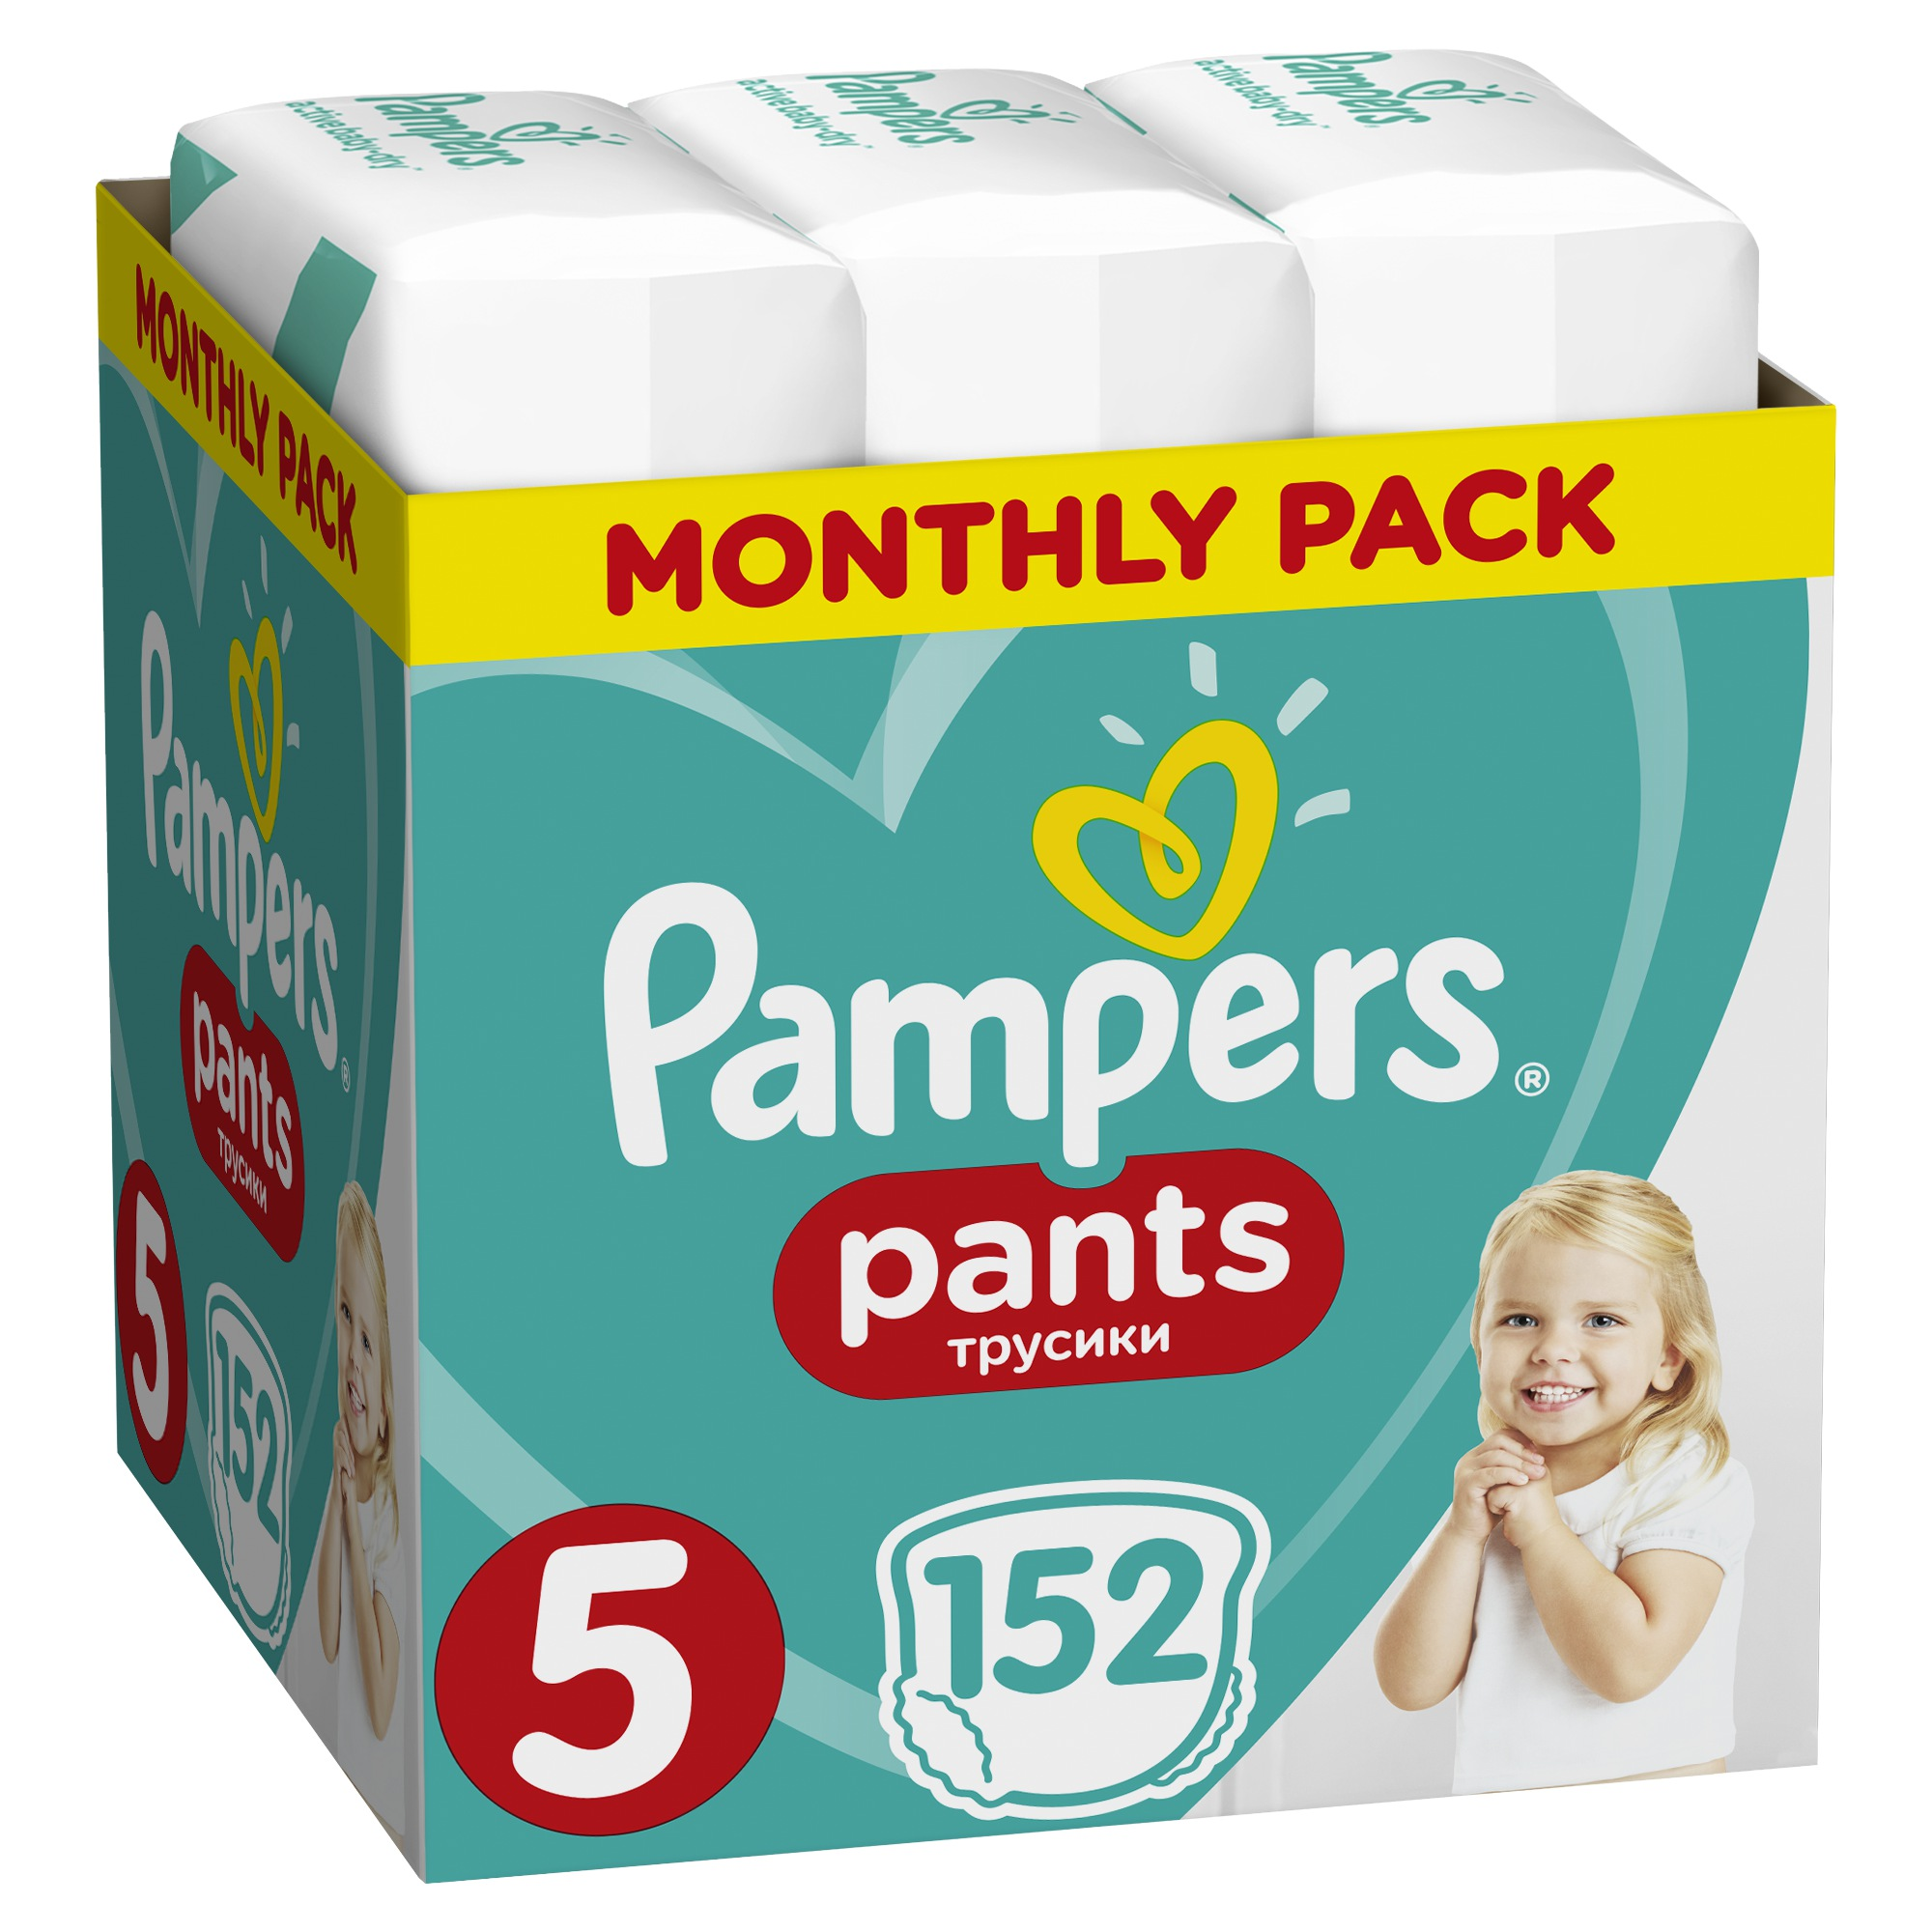 PAMPERS Pants ZAPAS Pieluchomajtki 5 Junior 152 sz